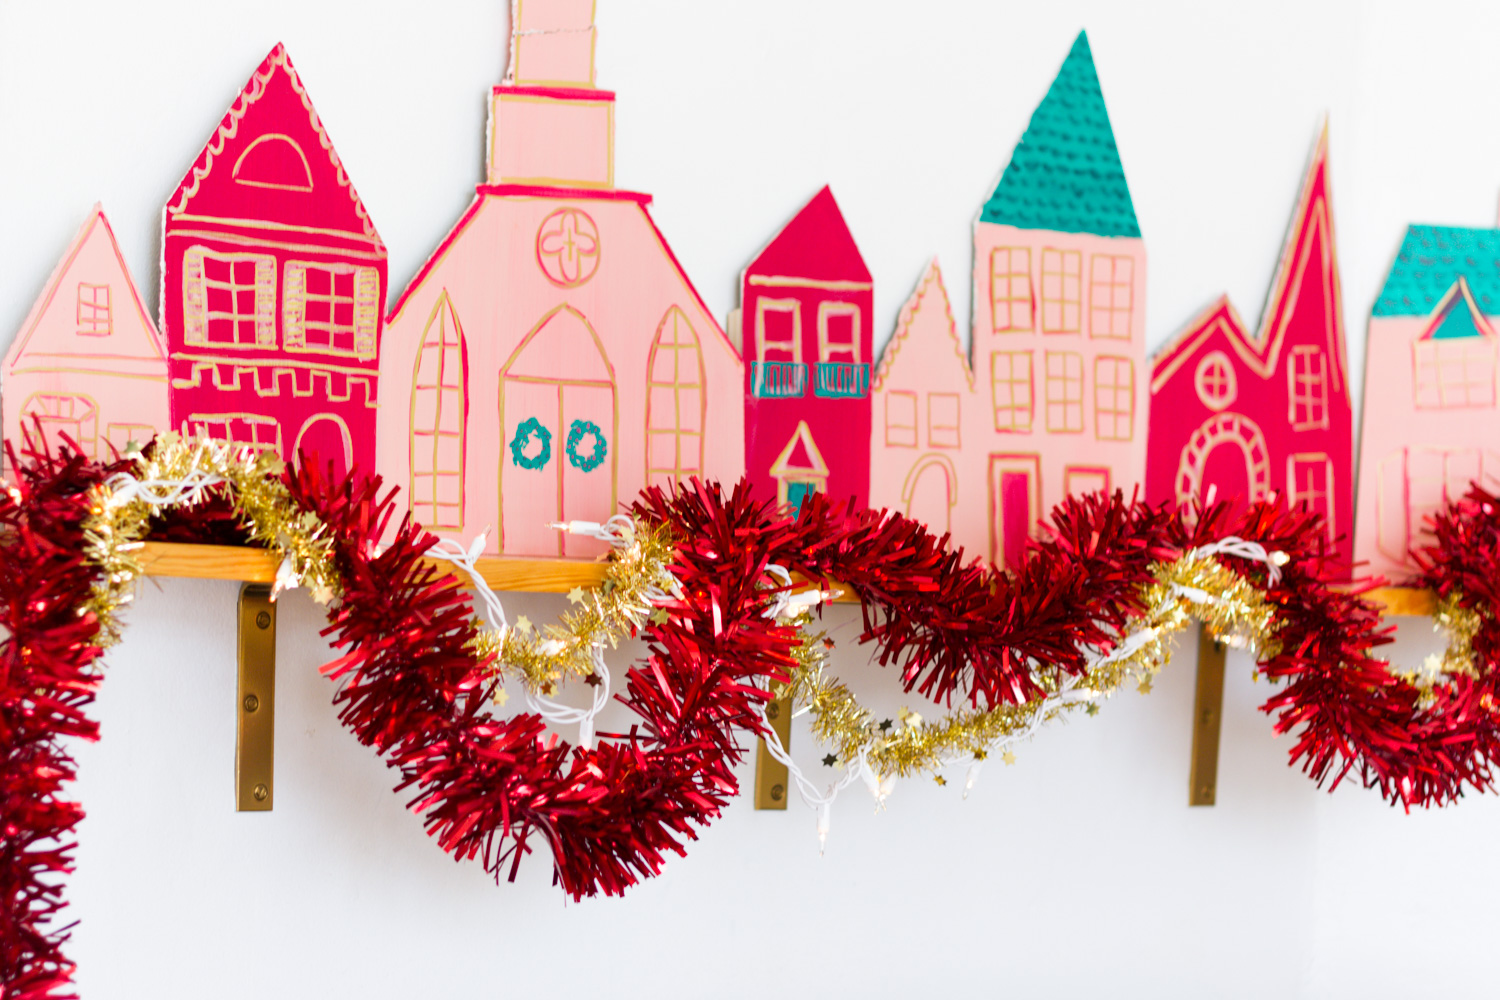 DIY pink and red painted Christmas village